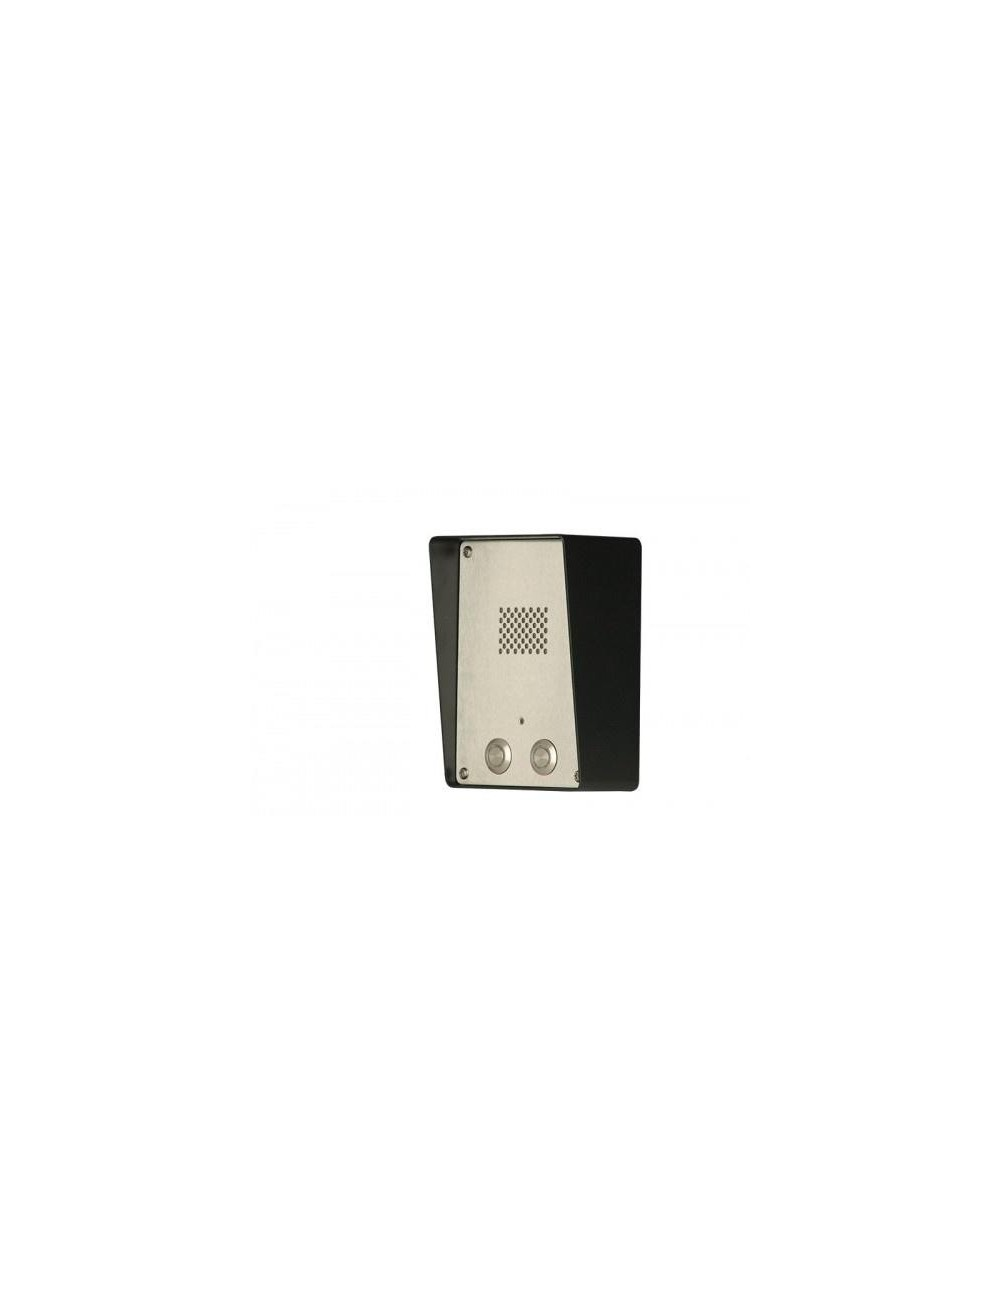 GSM apartment phone with adk 2 buttons - 26008020